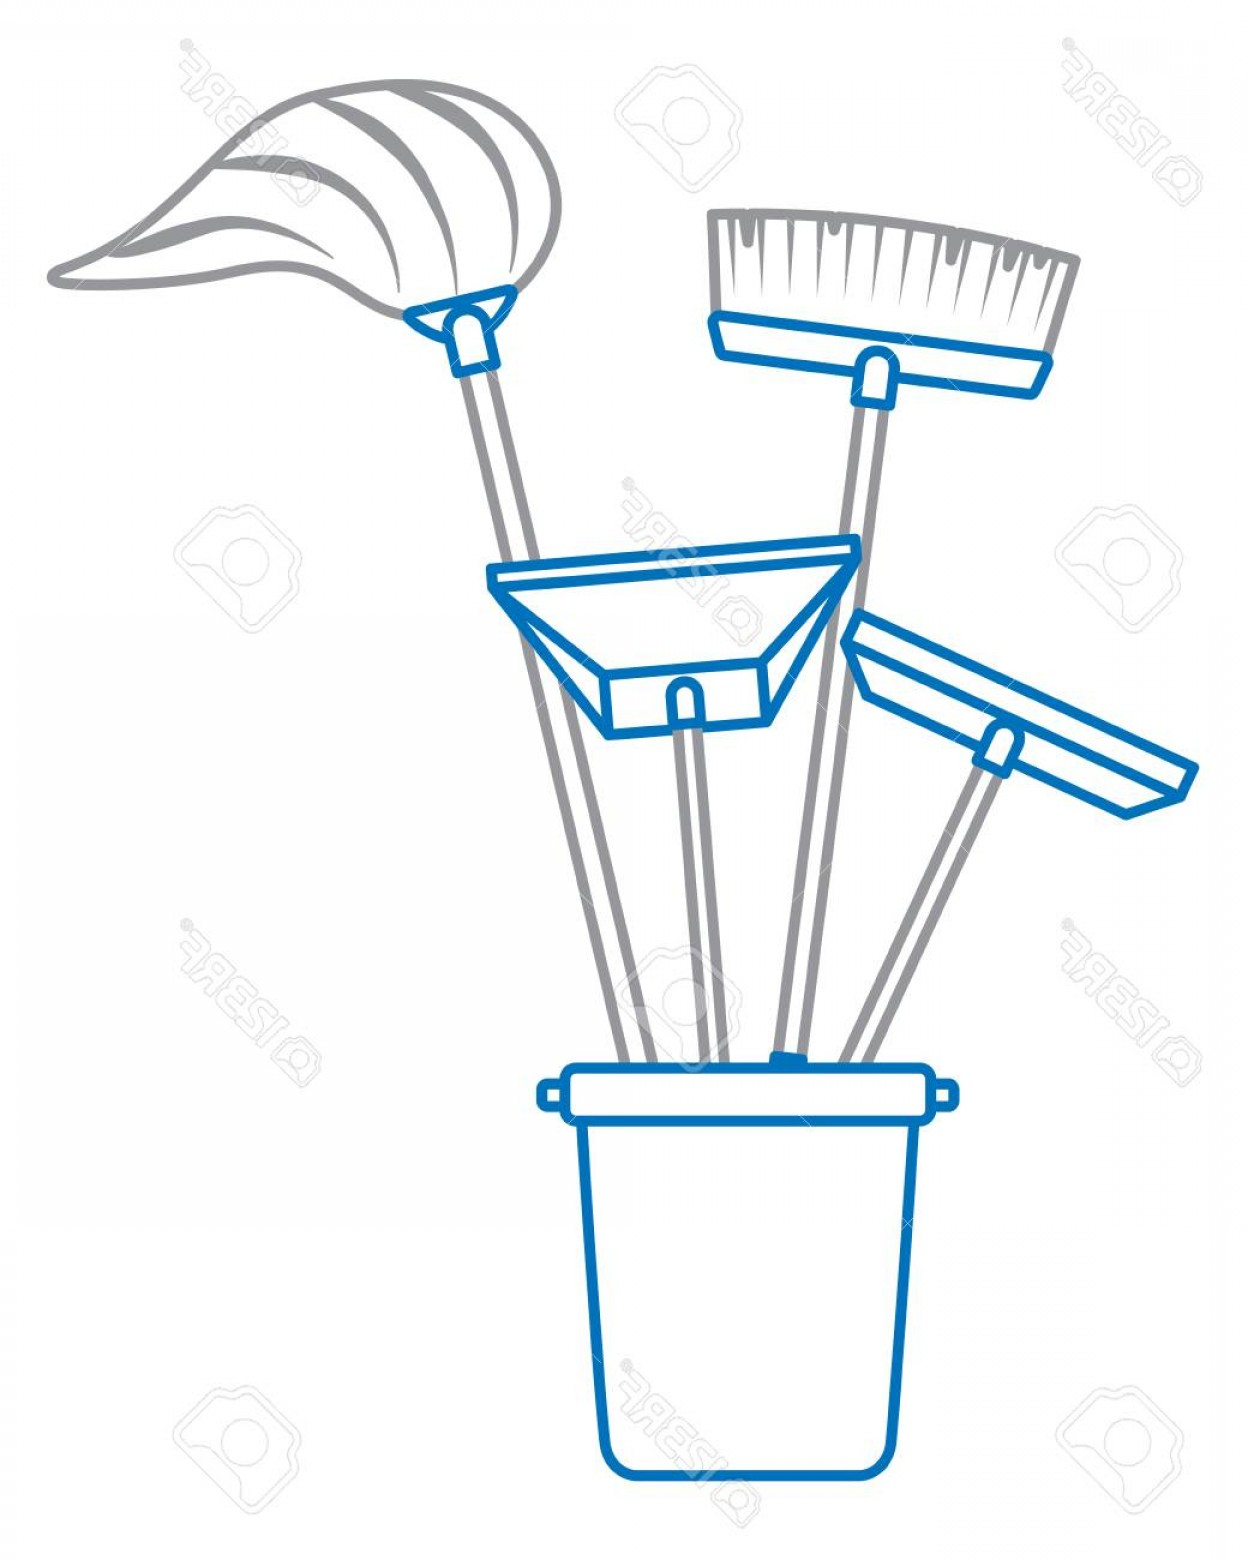 Janitorial Vector: Photostock Vector Plastic Bucket Full Of Janitor Tools Vector Illustration